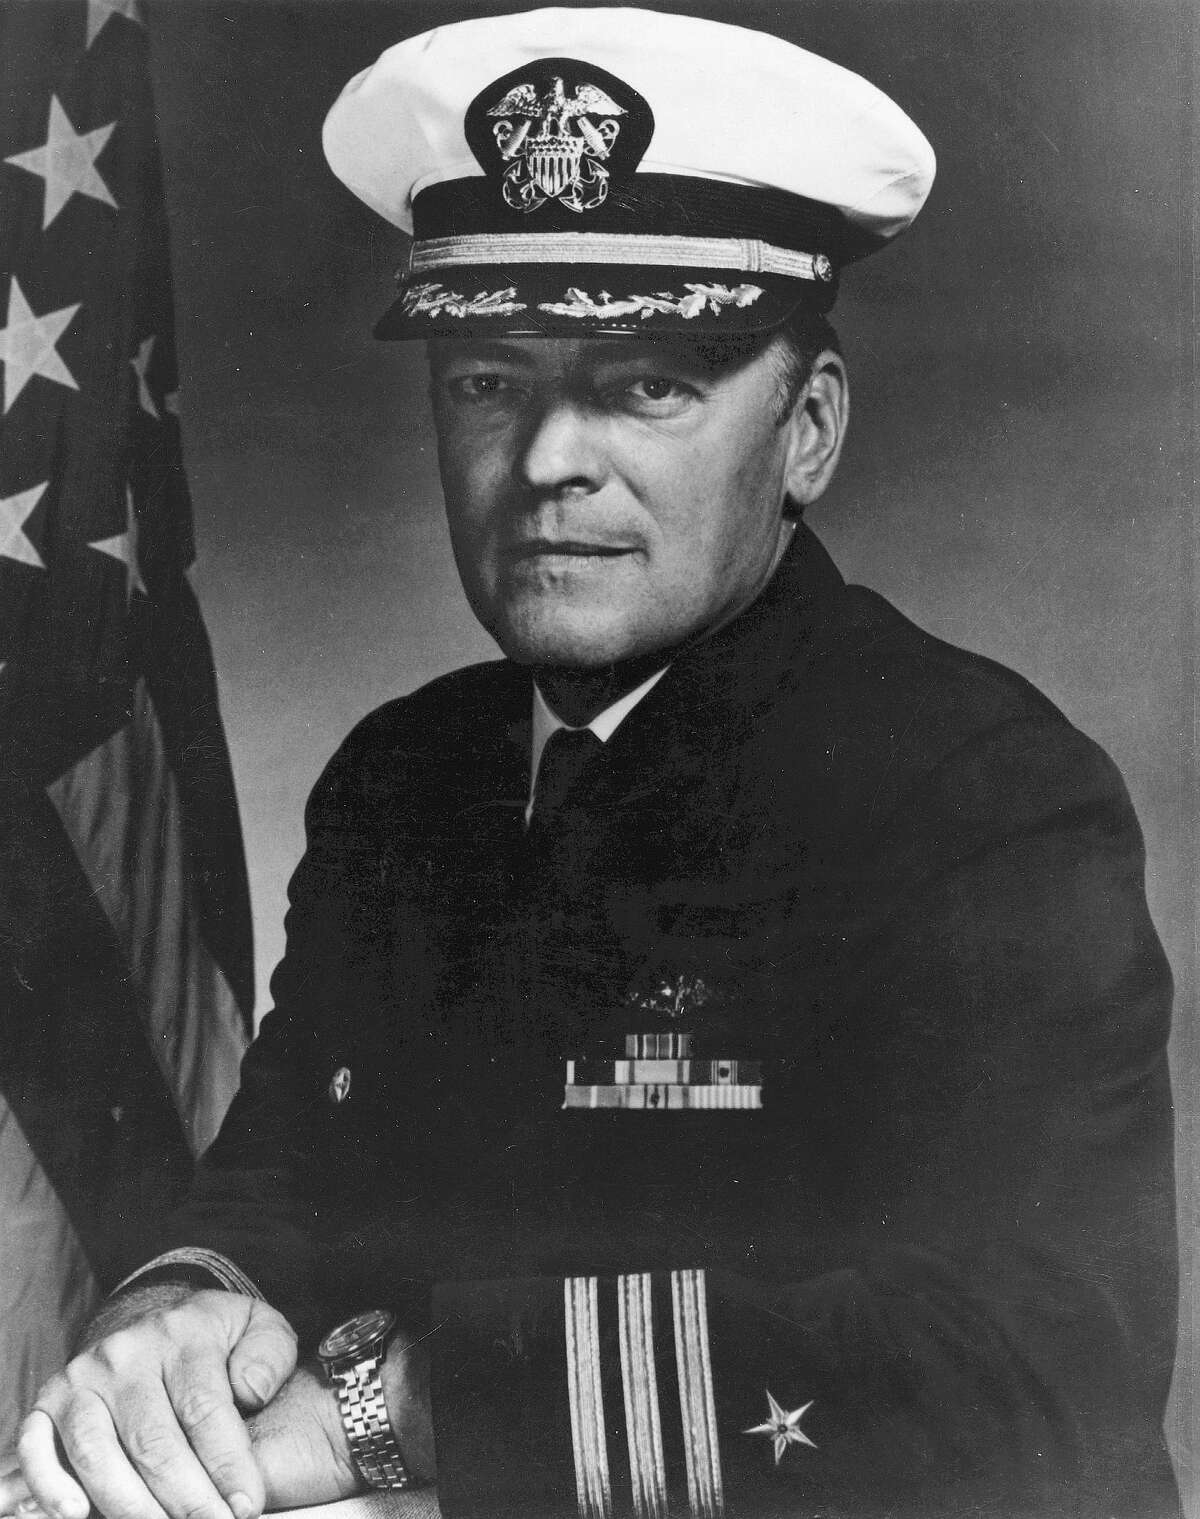 """Lloyd """"Pete"""" Bucher, the former Navy commander of the U.S. Navy intelligence ship USS Pueblo, shown in this 1967 file photo, died Wednesday, Jan. 28, 2004, in a nursing facility in Poway, Calif. He was 76. The infamous spy ship sparked an international crisis when its crew was taken hostage in 1968 by North Korea. (AP Photo/Girls and BoysTown)"""